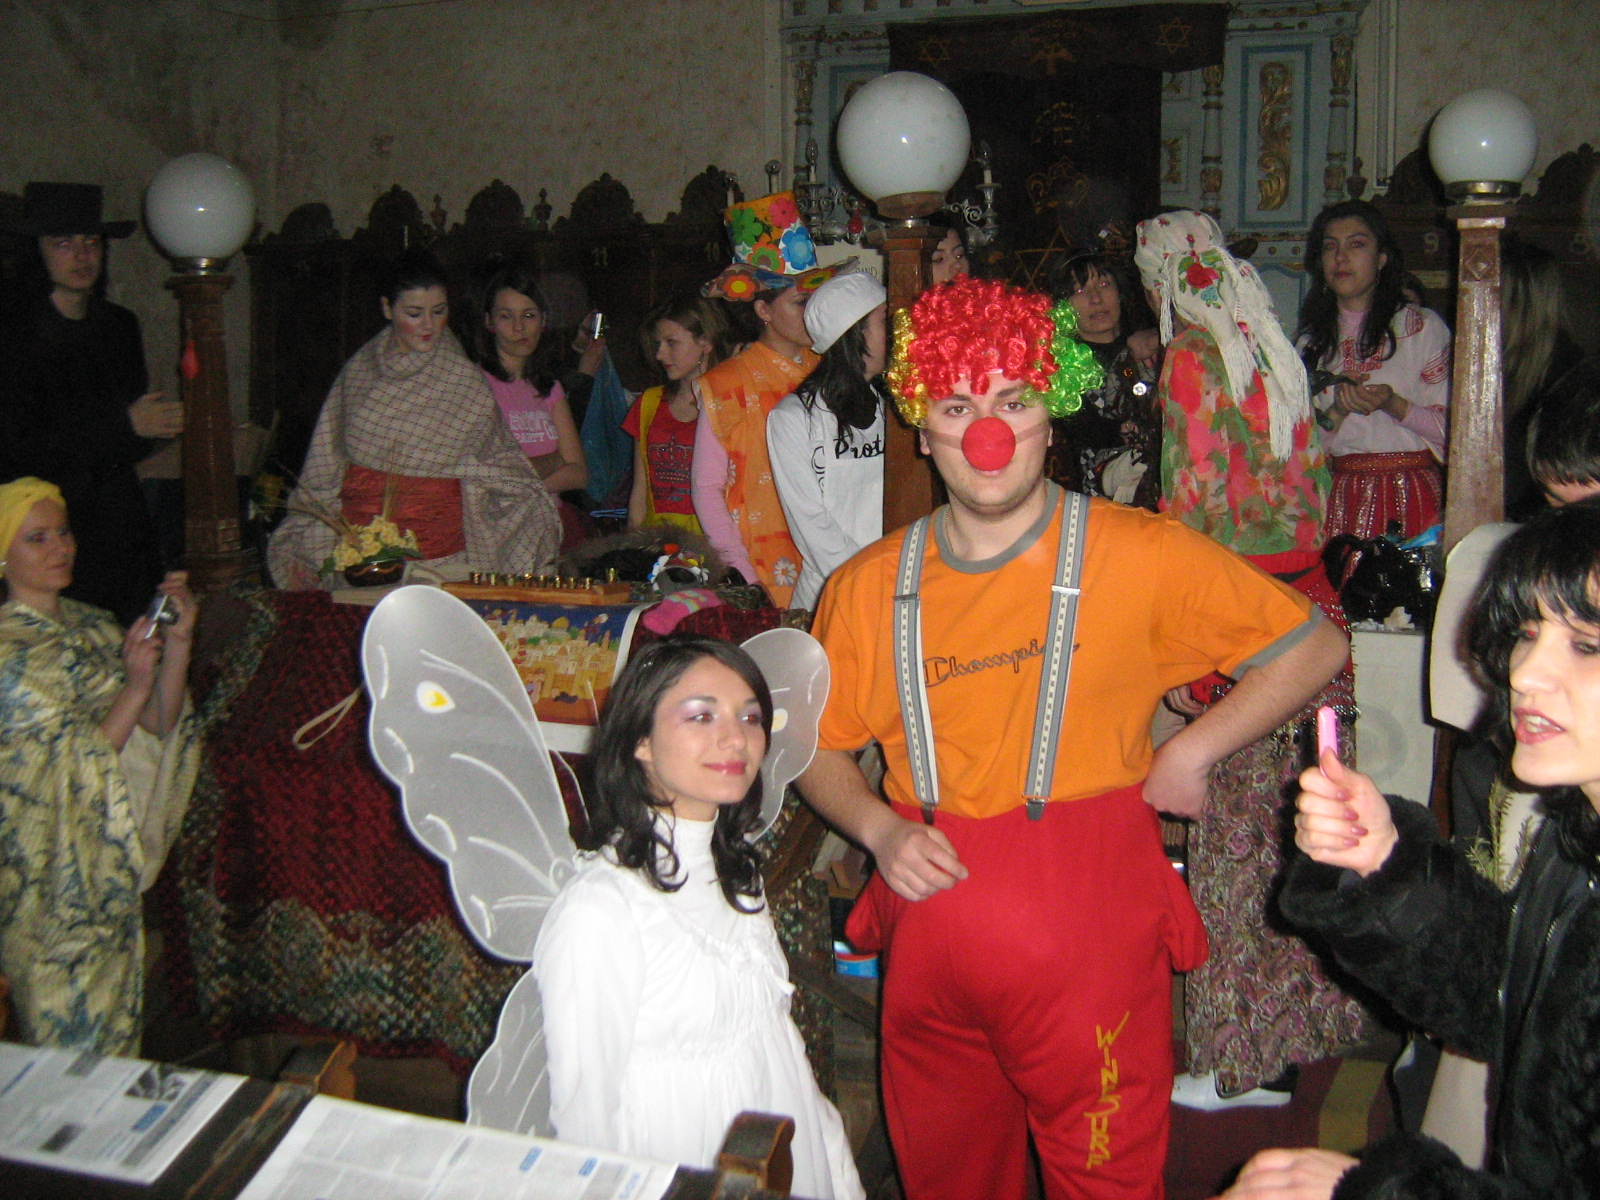 You are browsing images from the article: Purim 2009